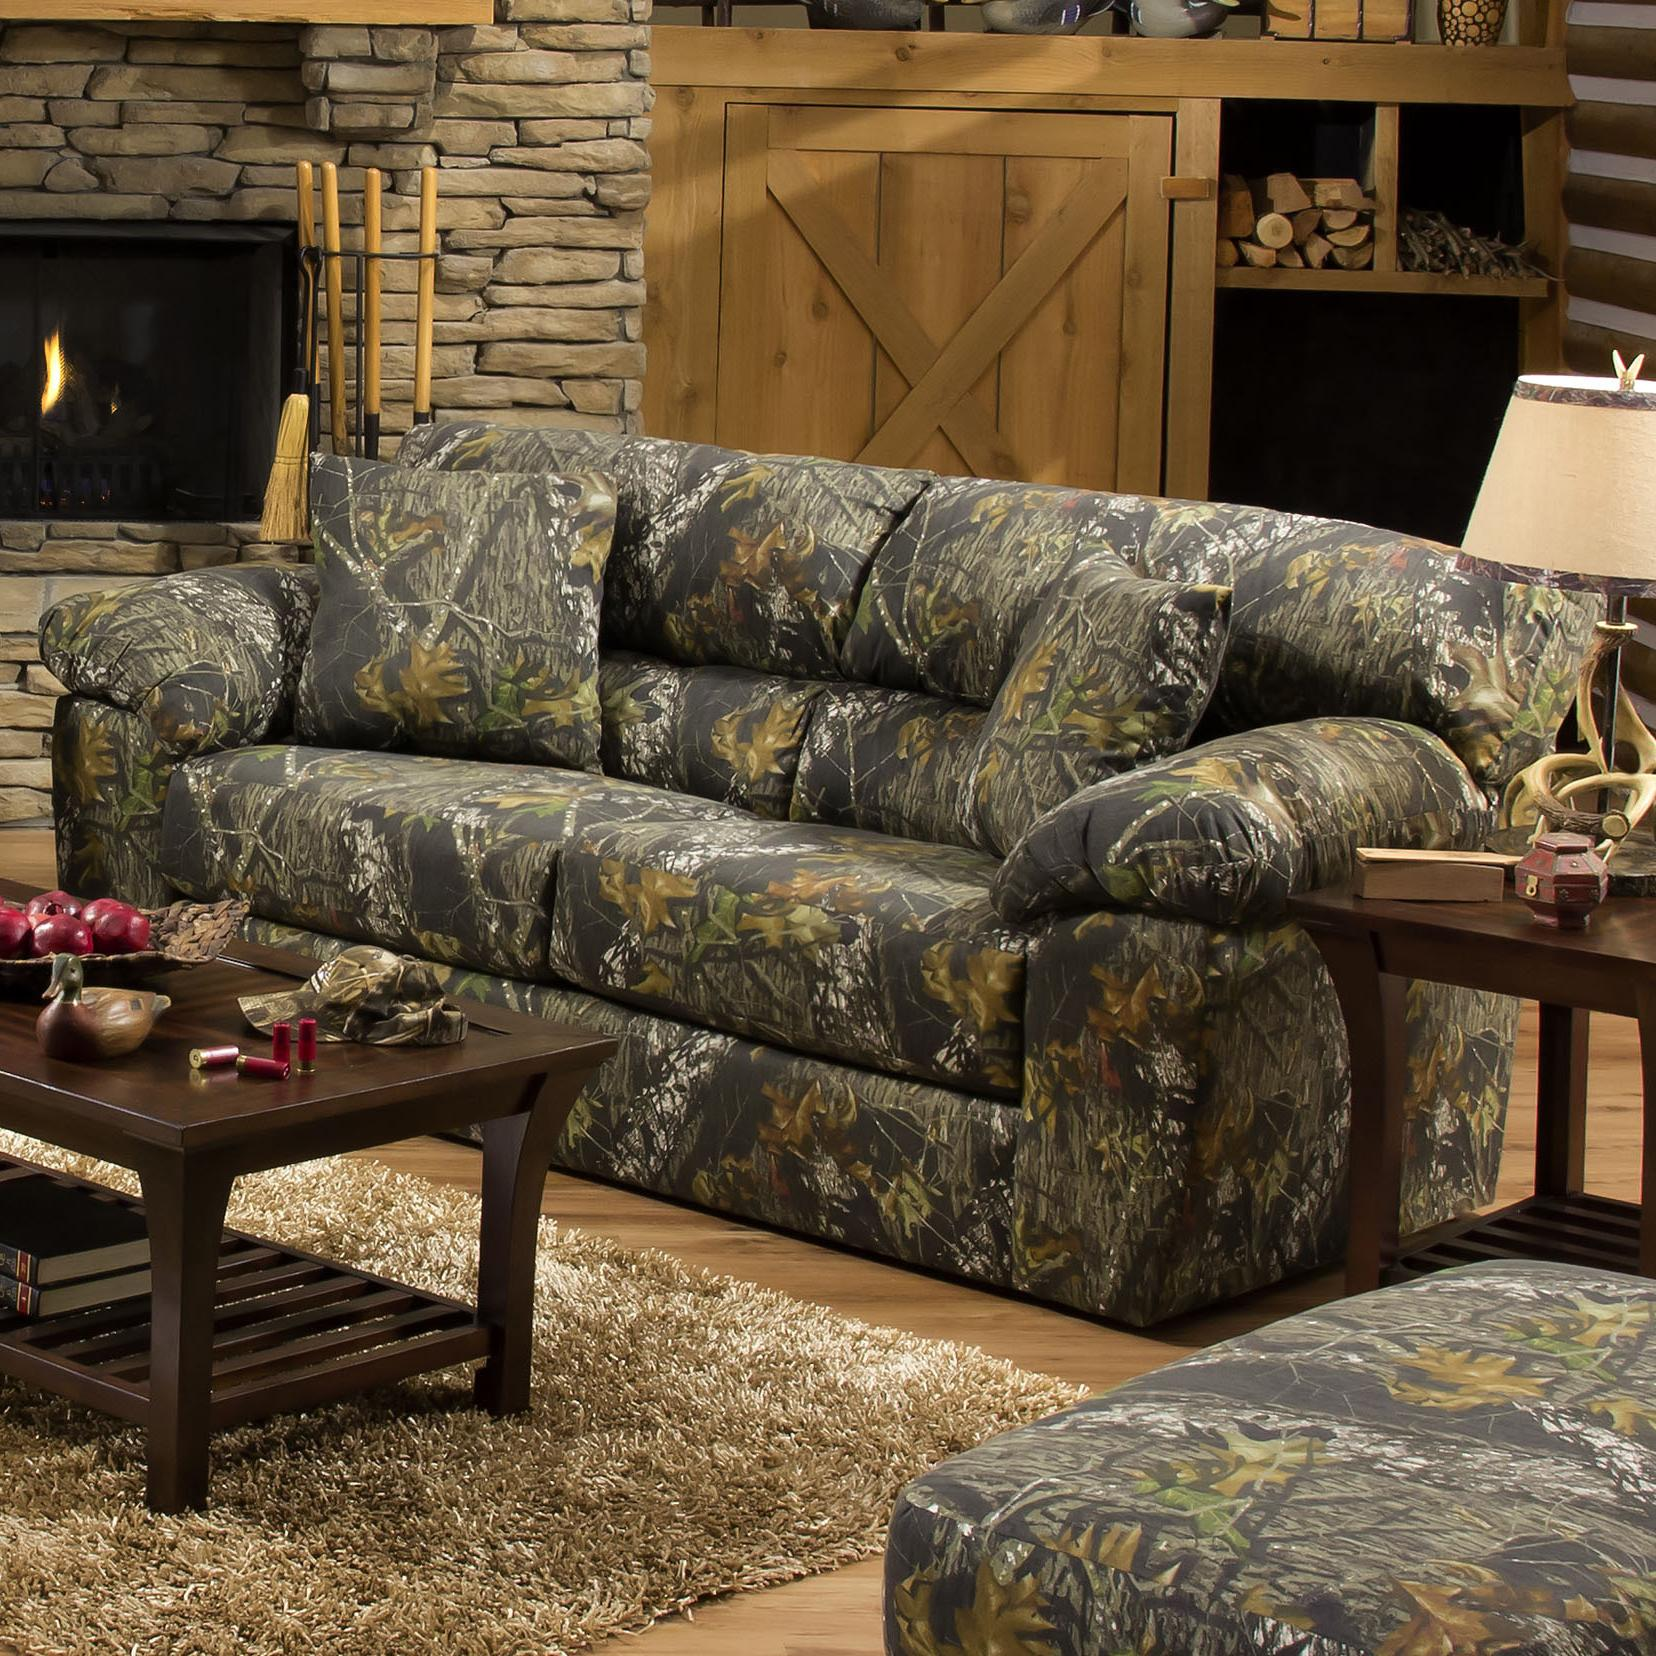 Camouflage Two Seat Sleeper Sofa By Jackson Furniture